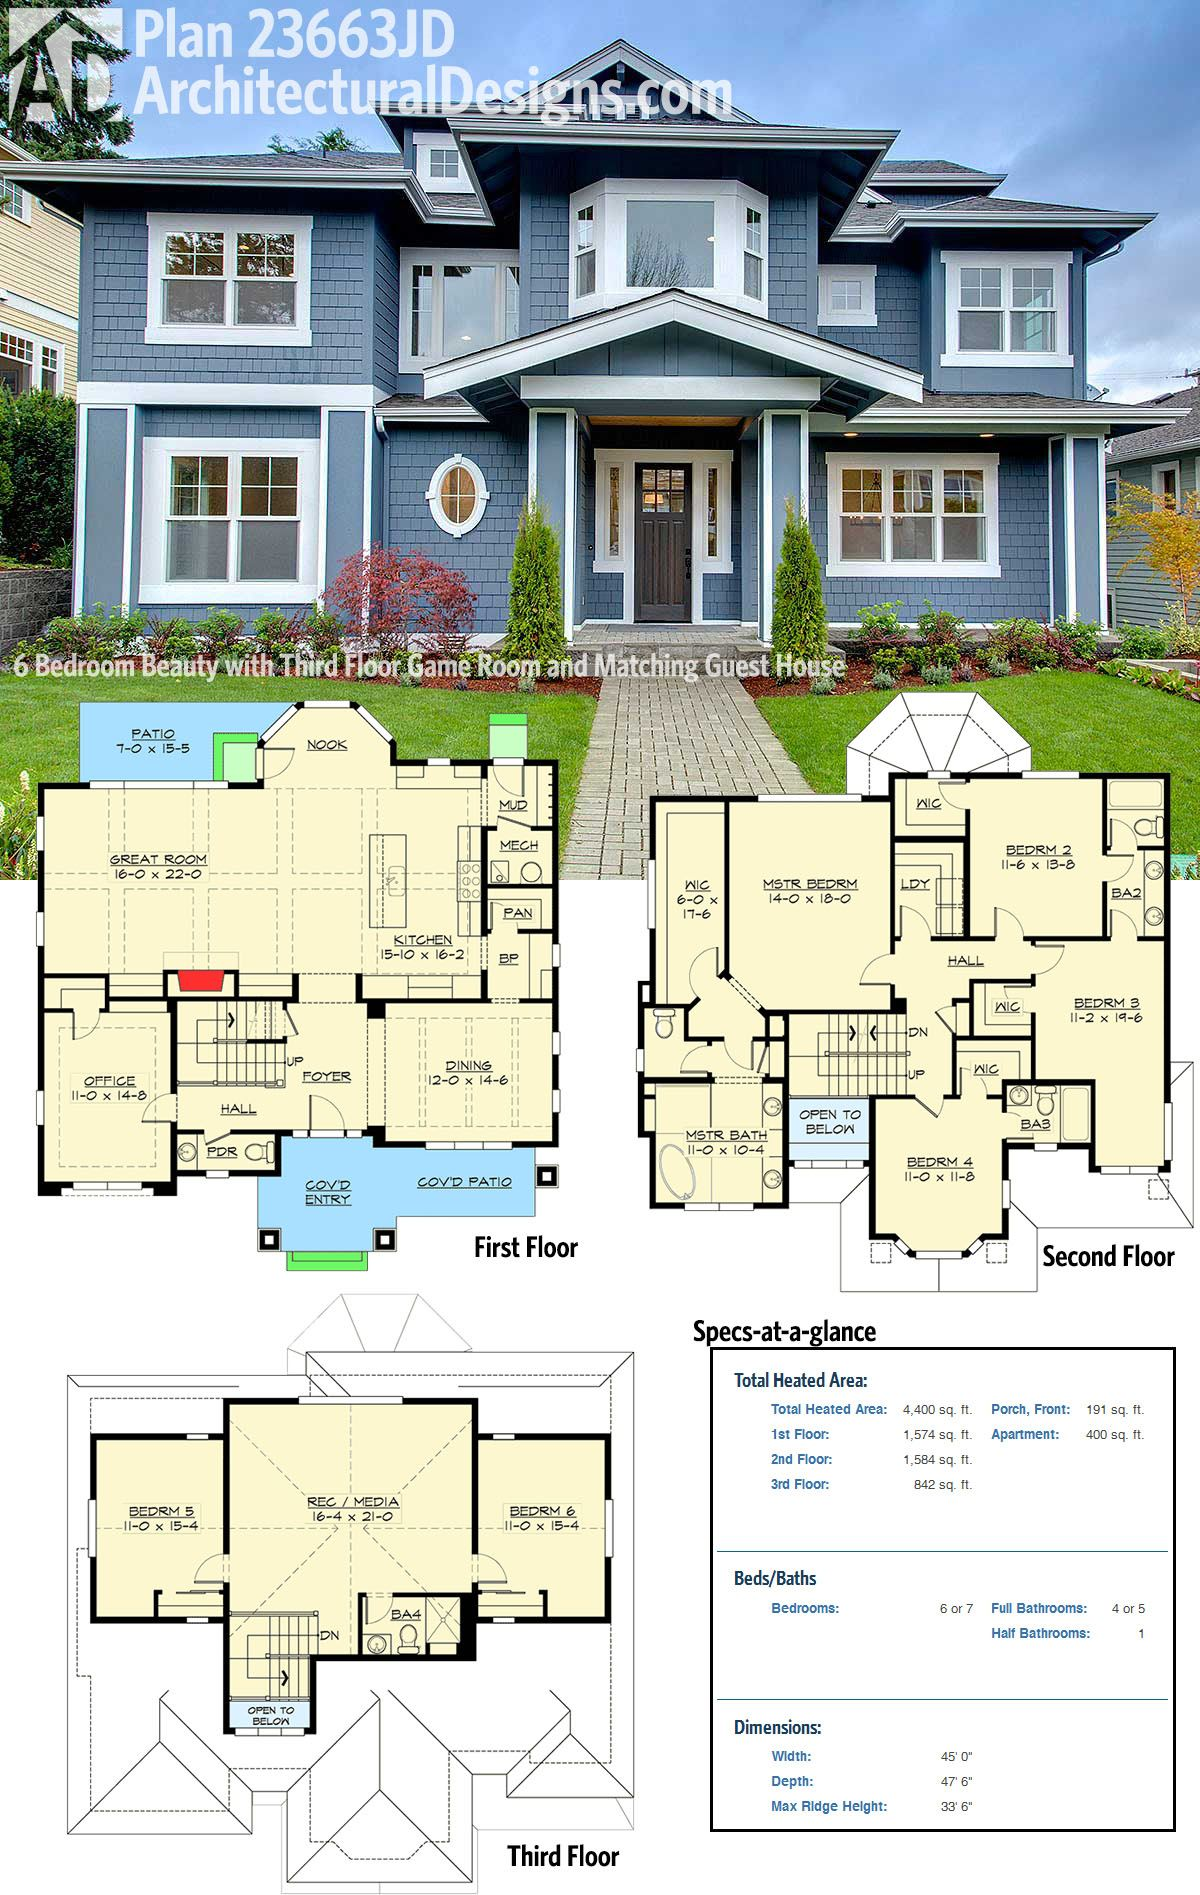 Plan 23663JD  6 Bedroom Beauty with Third Floor Game Room and Matching  Guest House. Plan 23663JD  6 Bedroom Beauty with Third Floor Game Room and